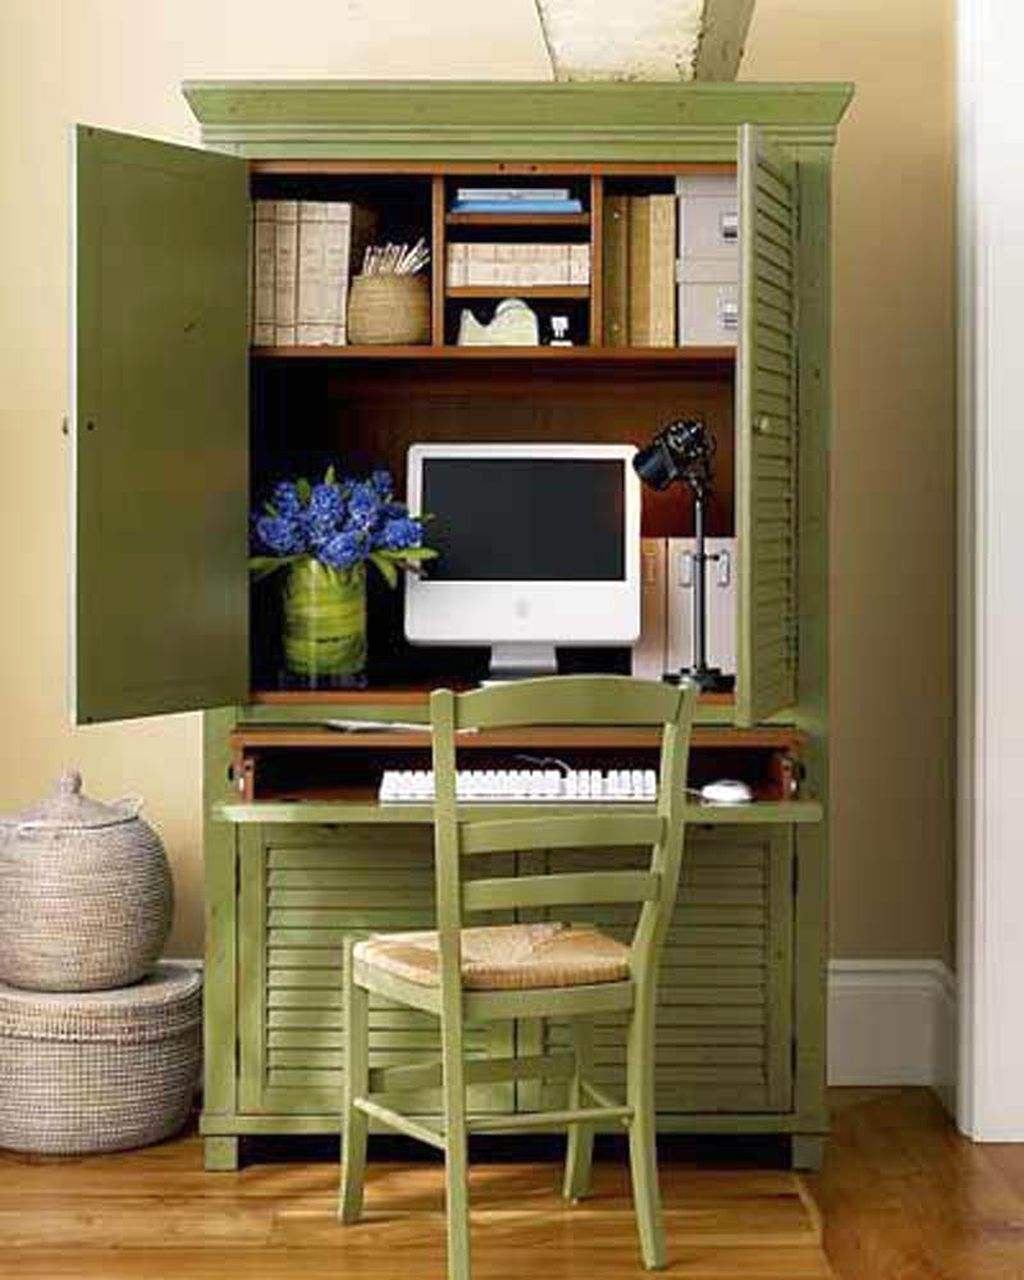 Green cupboard home office design ideas for small spaces - Home office design ...